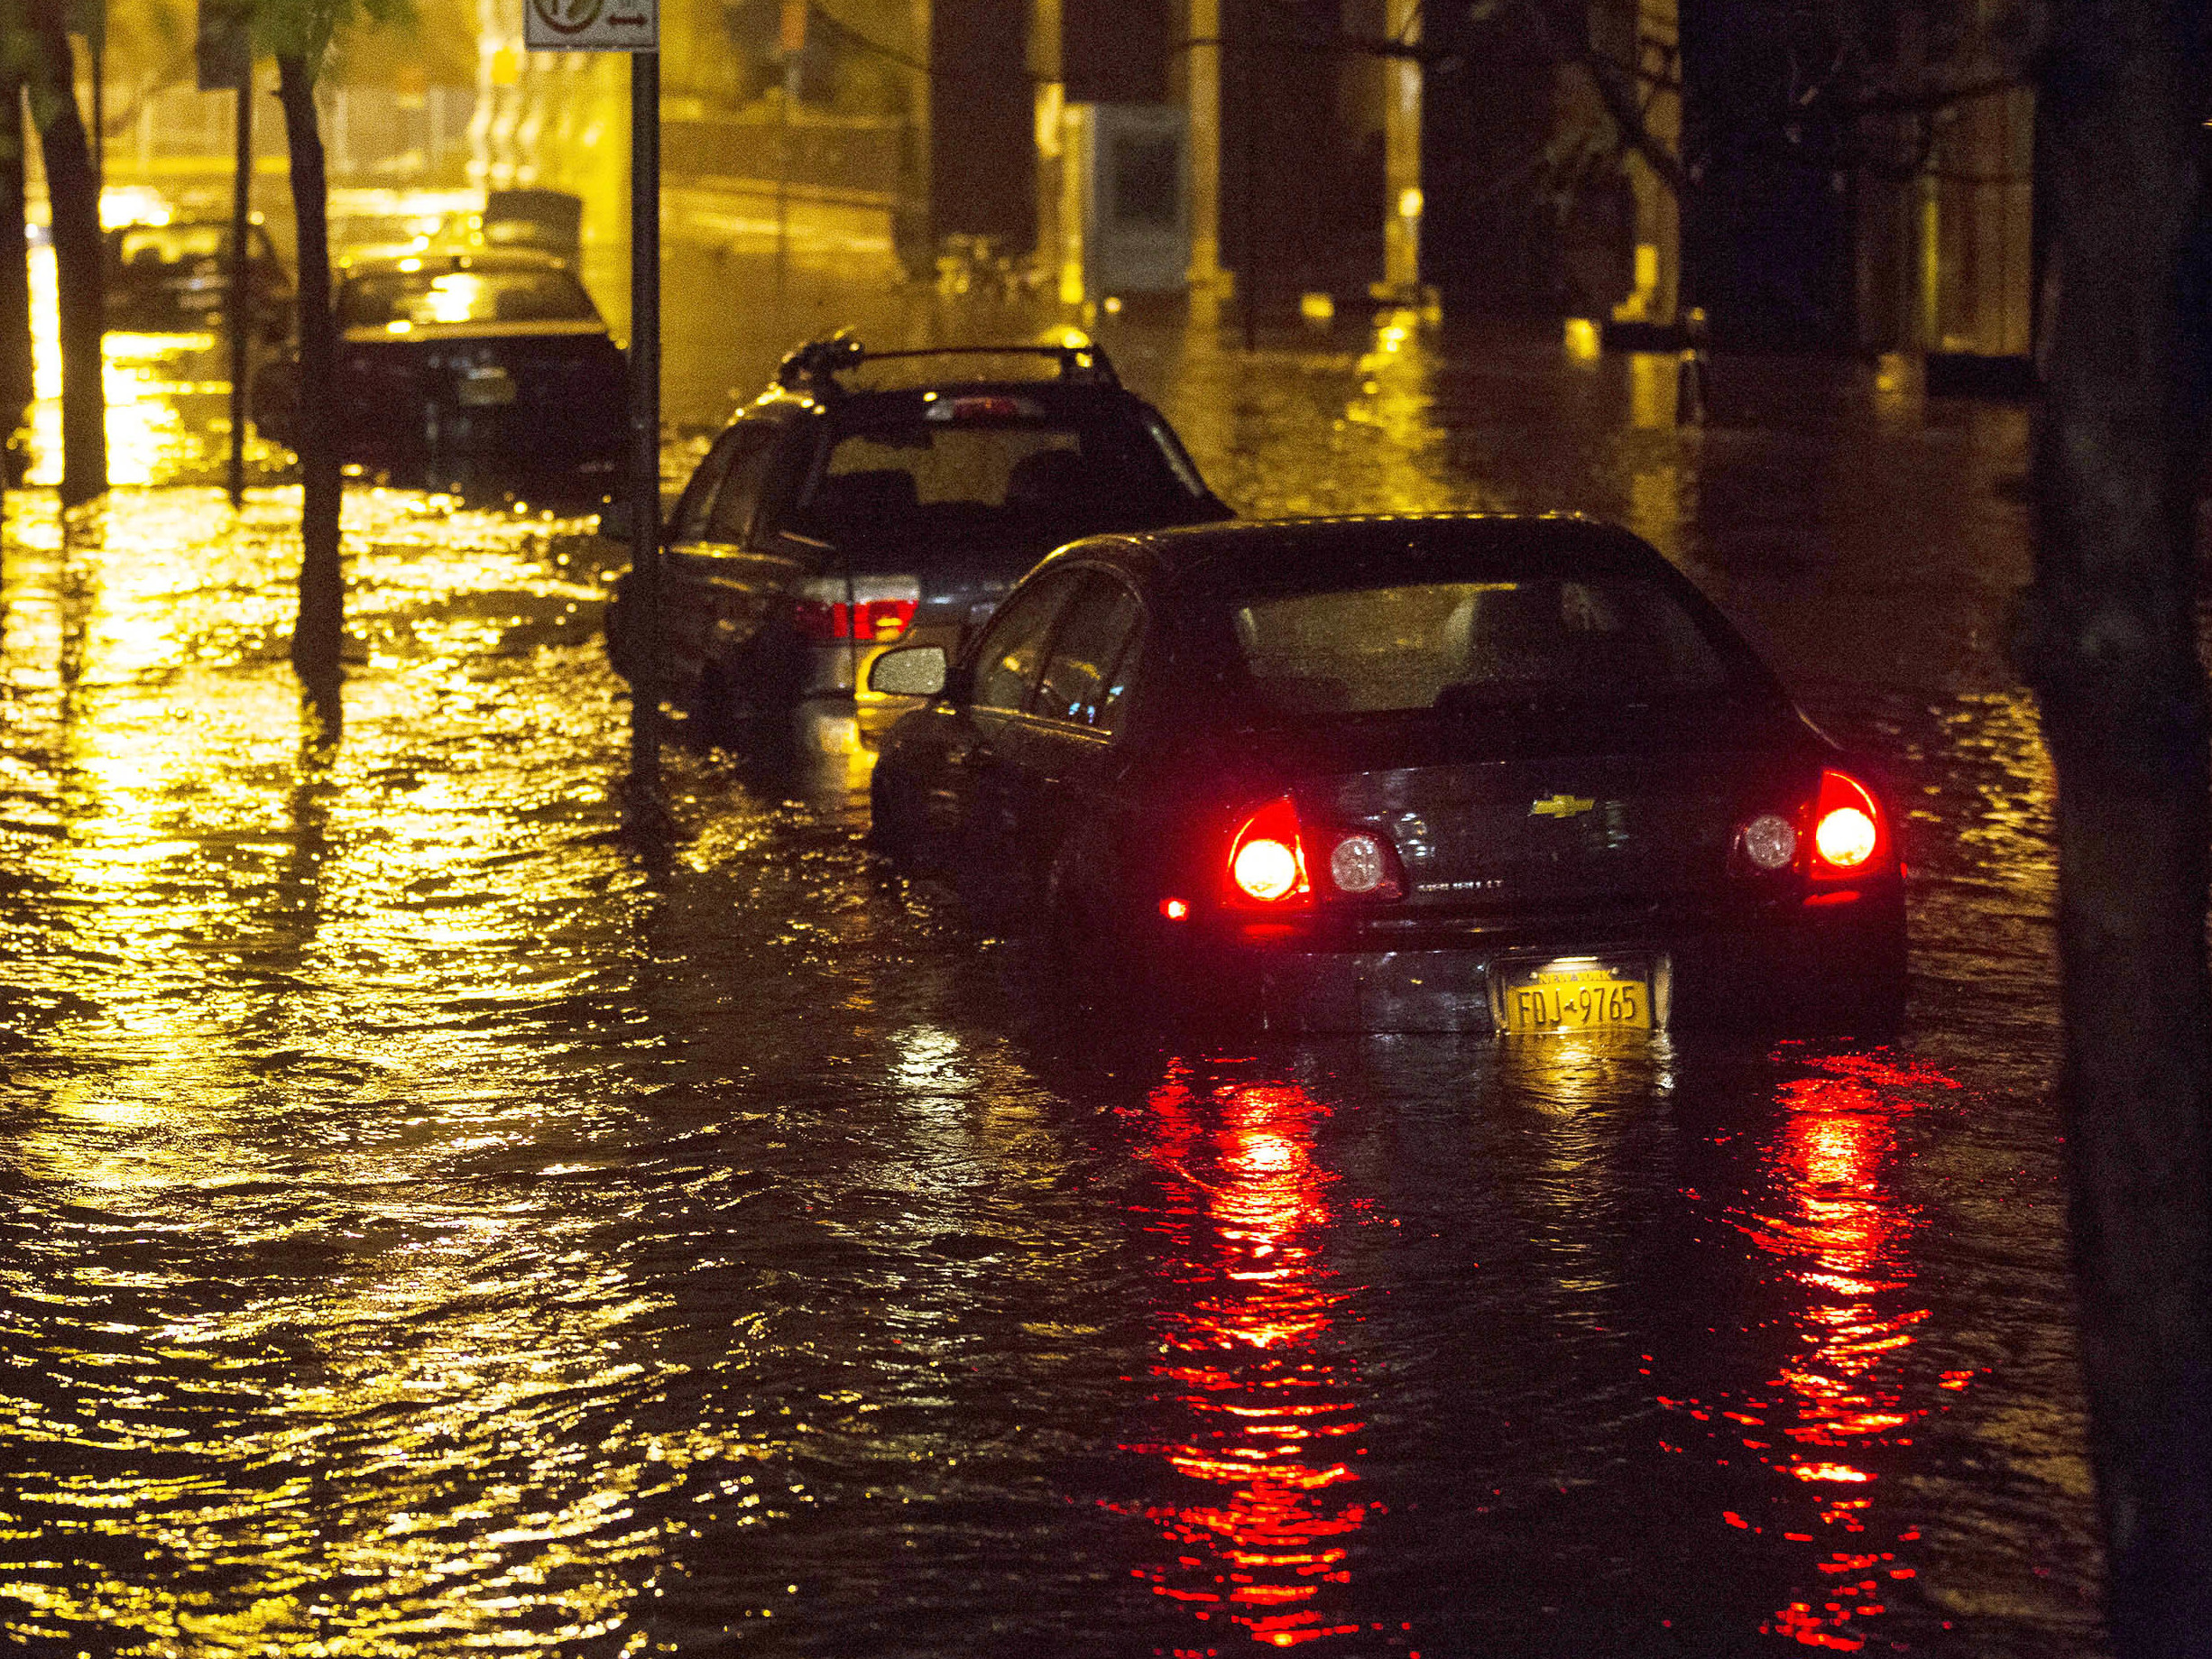 New York City Admits Defrauding FEMA Out Of Millions After Superstorm Sandy